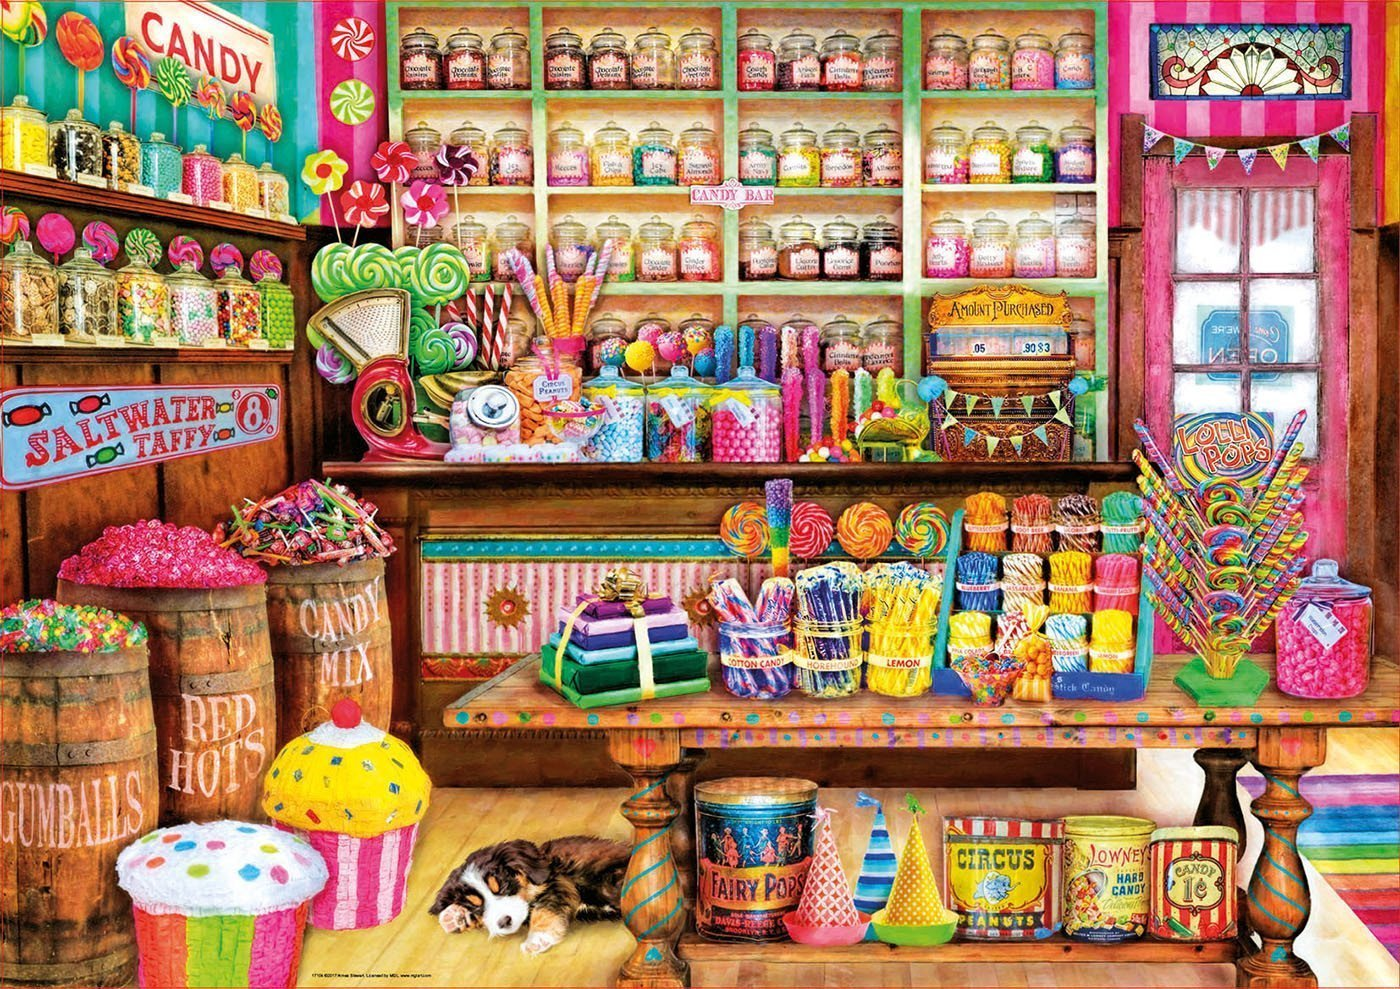 Jigsaw Puzzle - Candy Shop 1000 Piece Jigsaw Puzzle